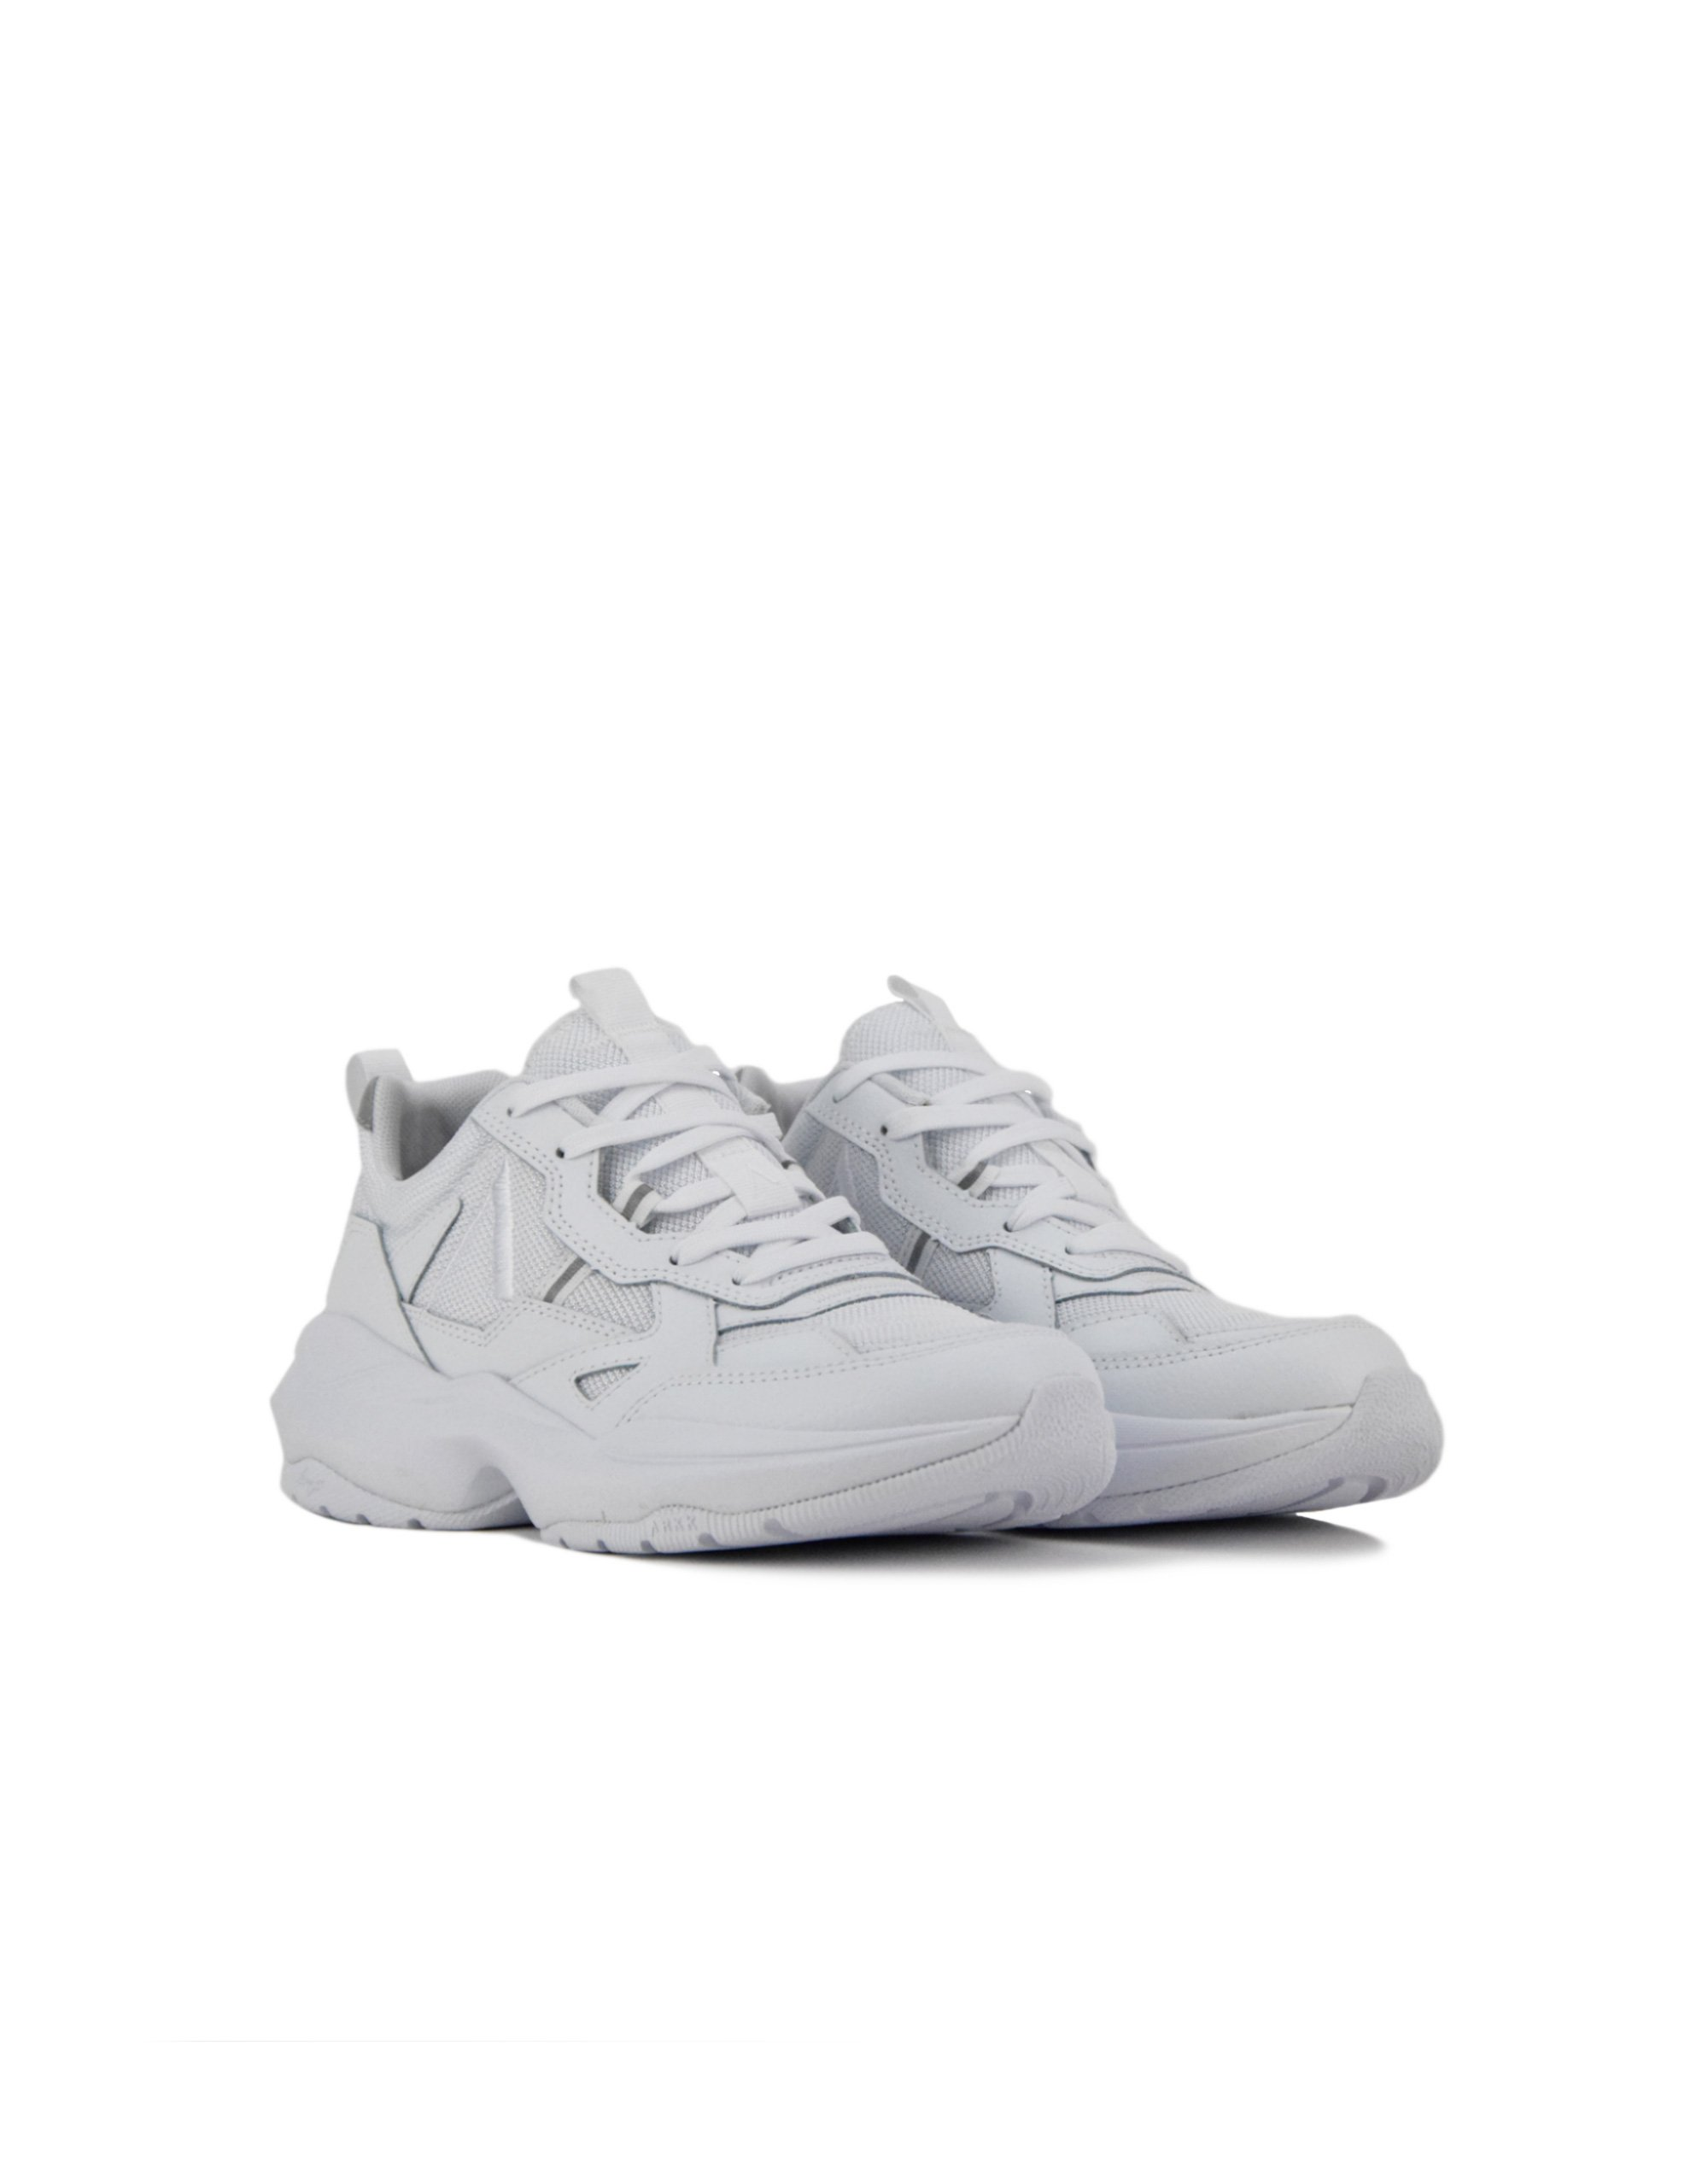 Arkk Copenhagen Quantum Leather T-G9 (CR5300-0010) Triple White